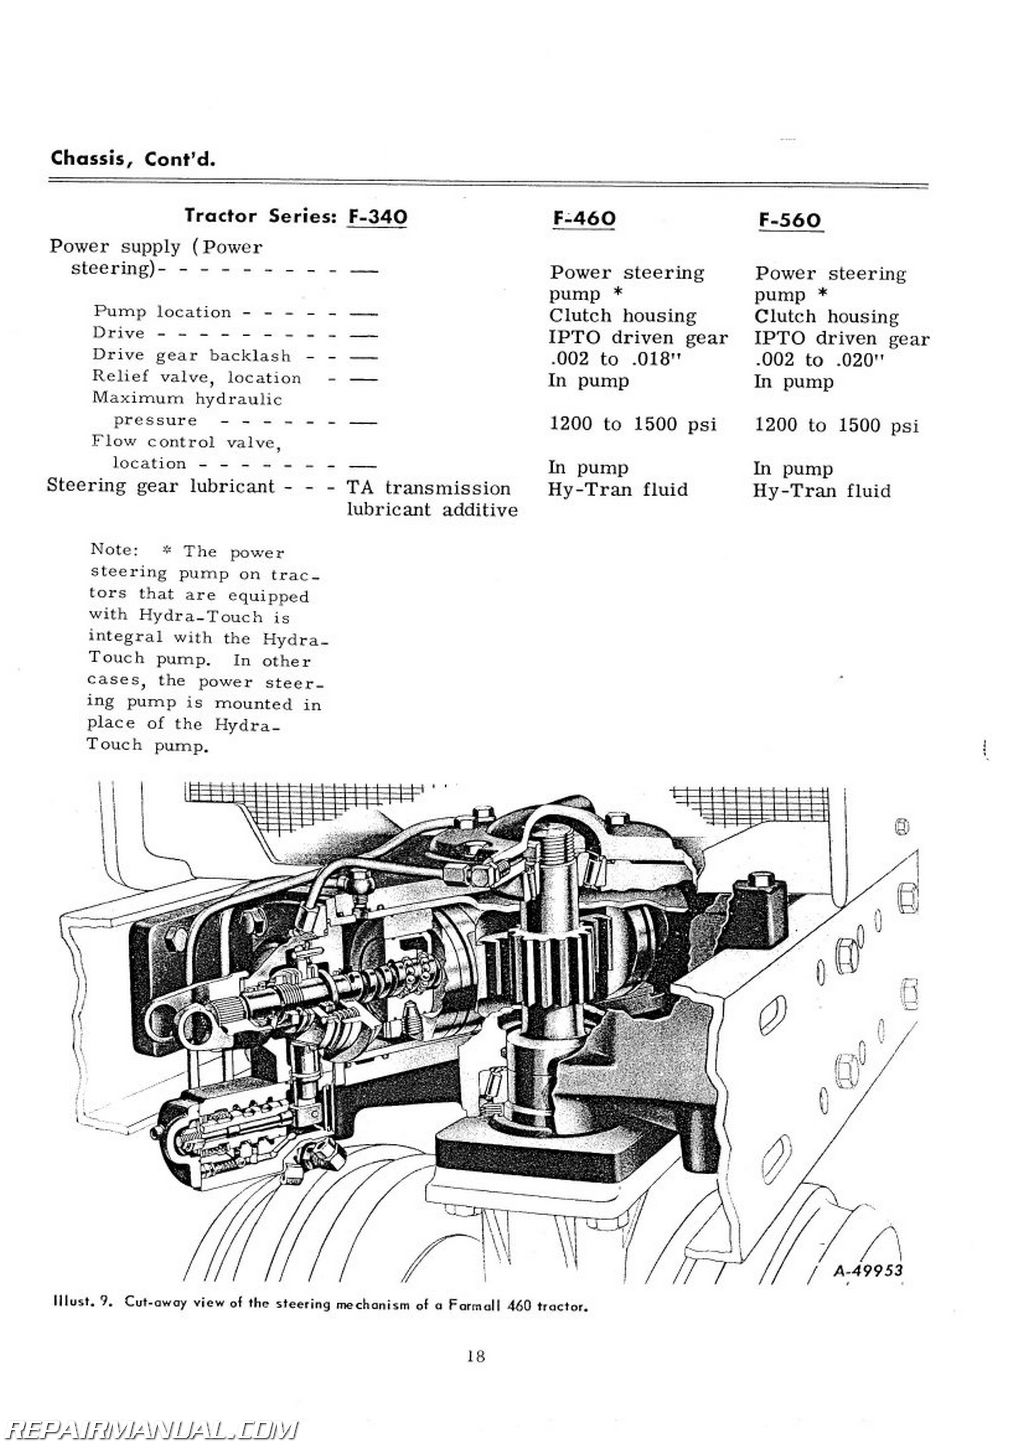 international harvester 340 460 560 tractor service manual two rh repairmanual com Manual Steering Diagram Go Kart Steering